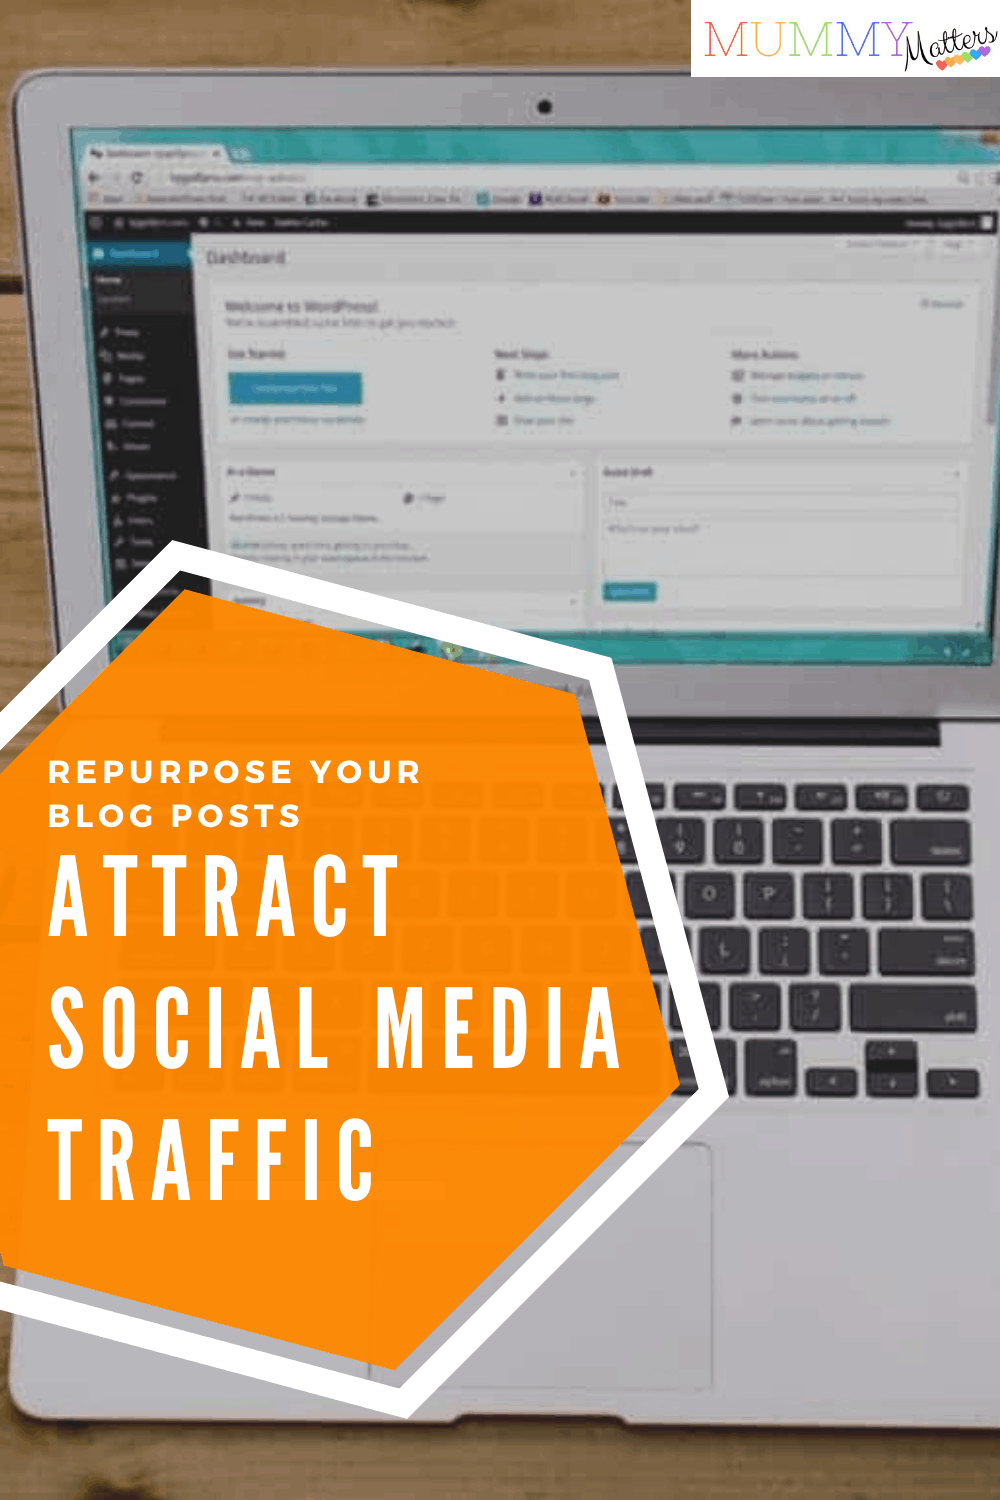 There are a number of ways in which you can make your social media marketing efforts more productive. Out of them, one is to repurpose your blog posts.